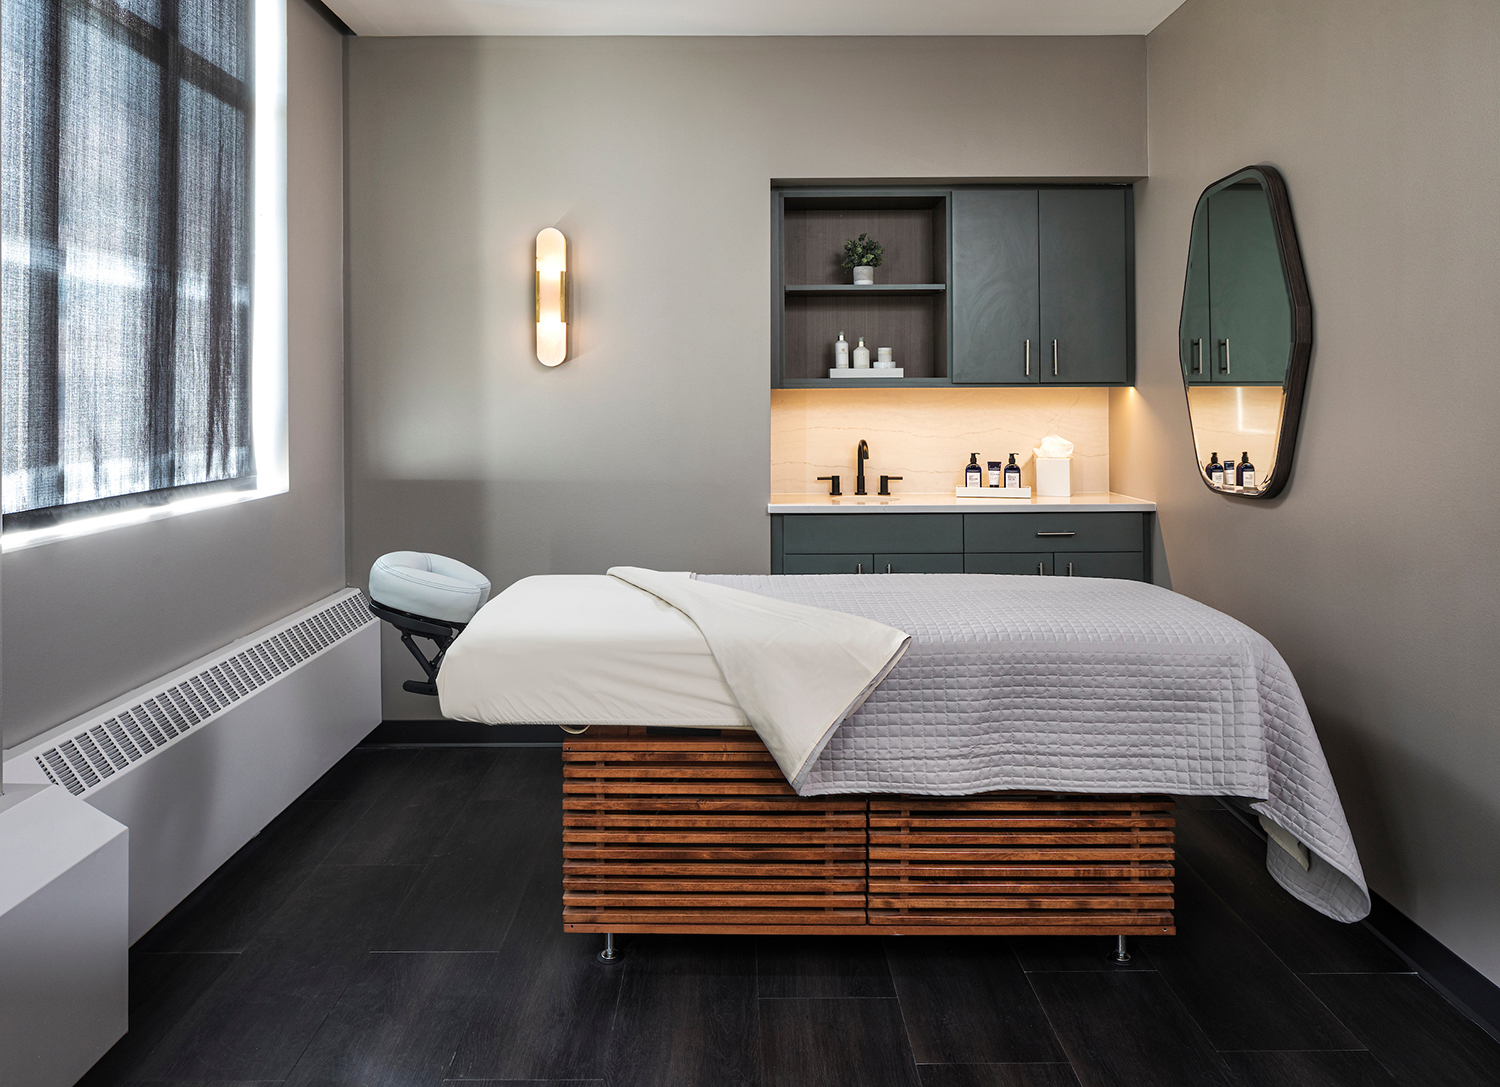 The menu offers a variety of full-body treatments and massages, including Himalayan salt stone scrubs, and more.